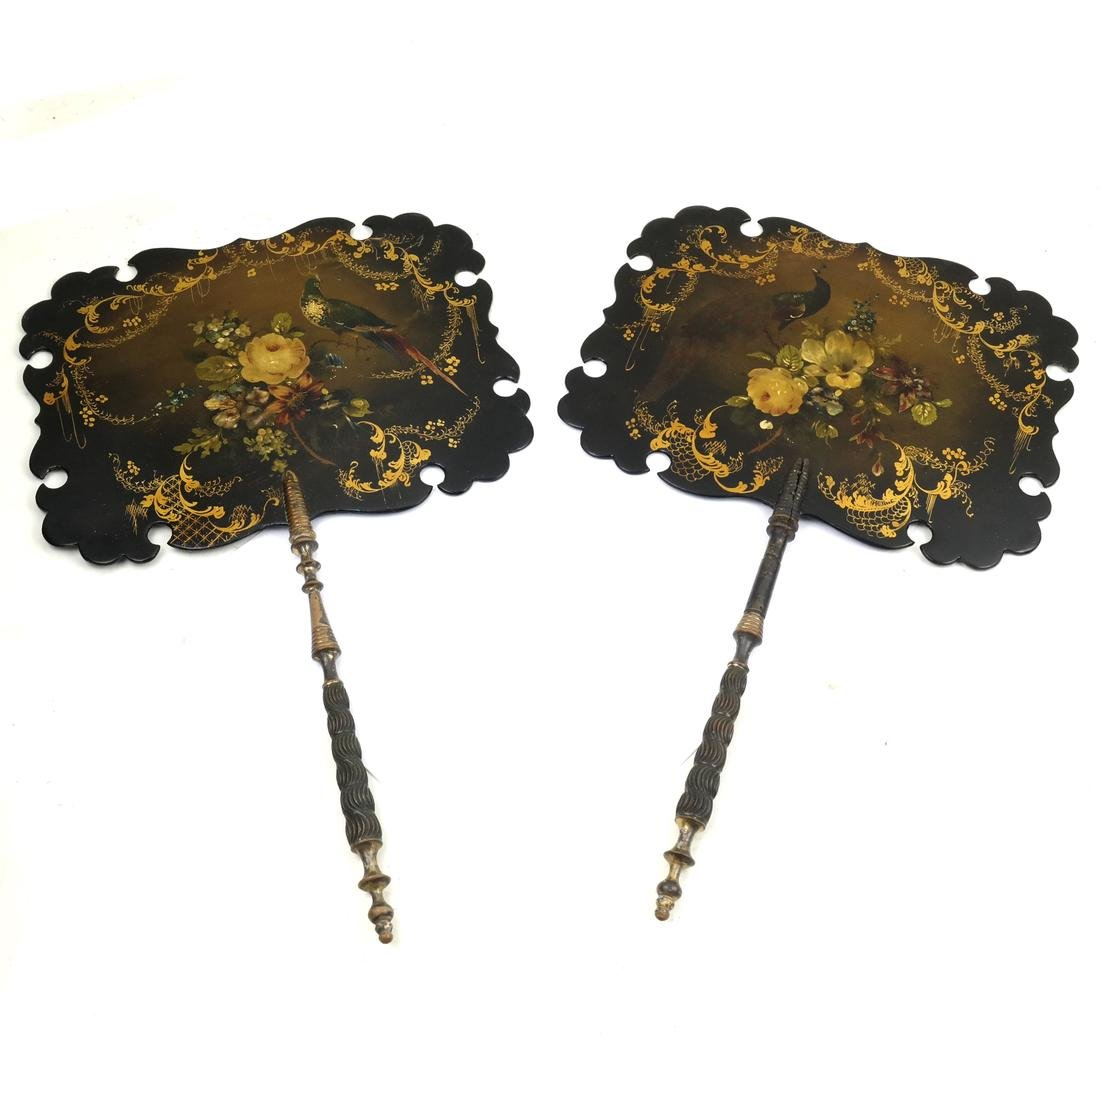 Two 19th Century Lacquered Hand Screens